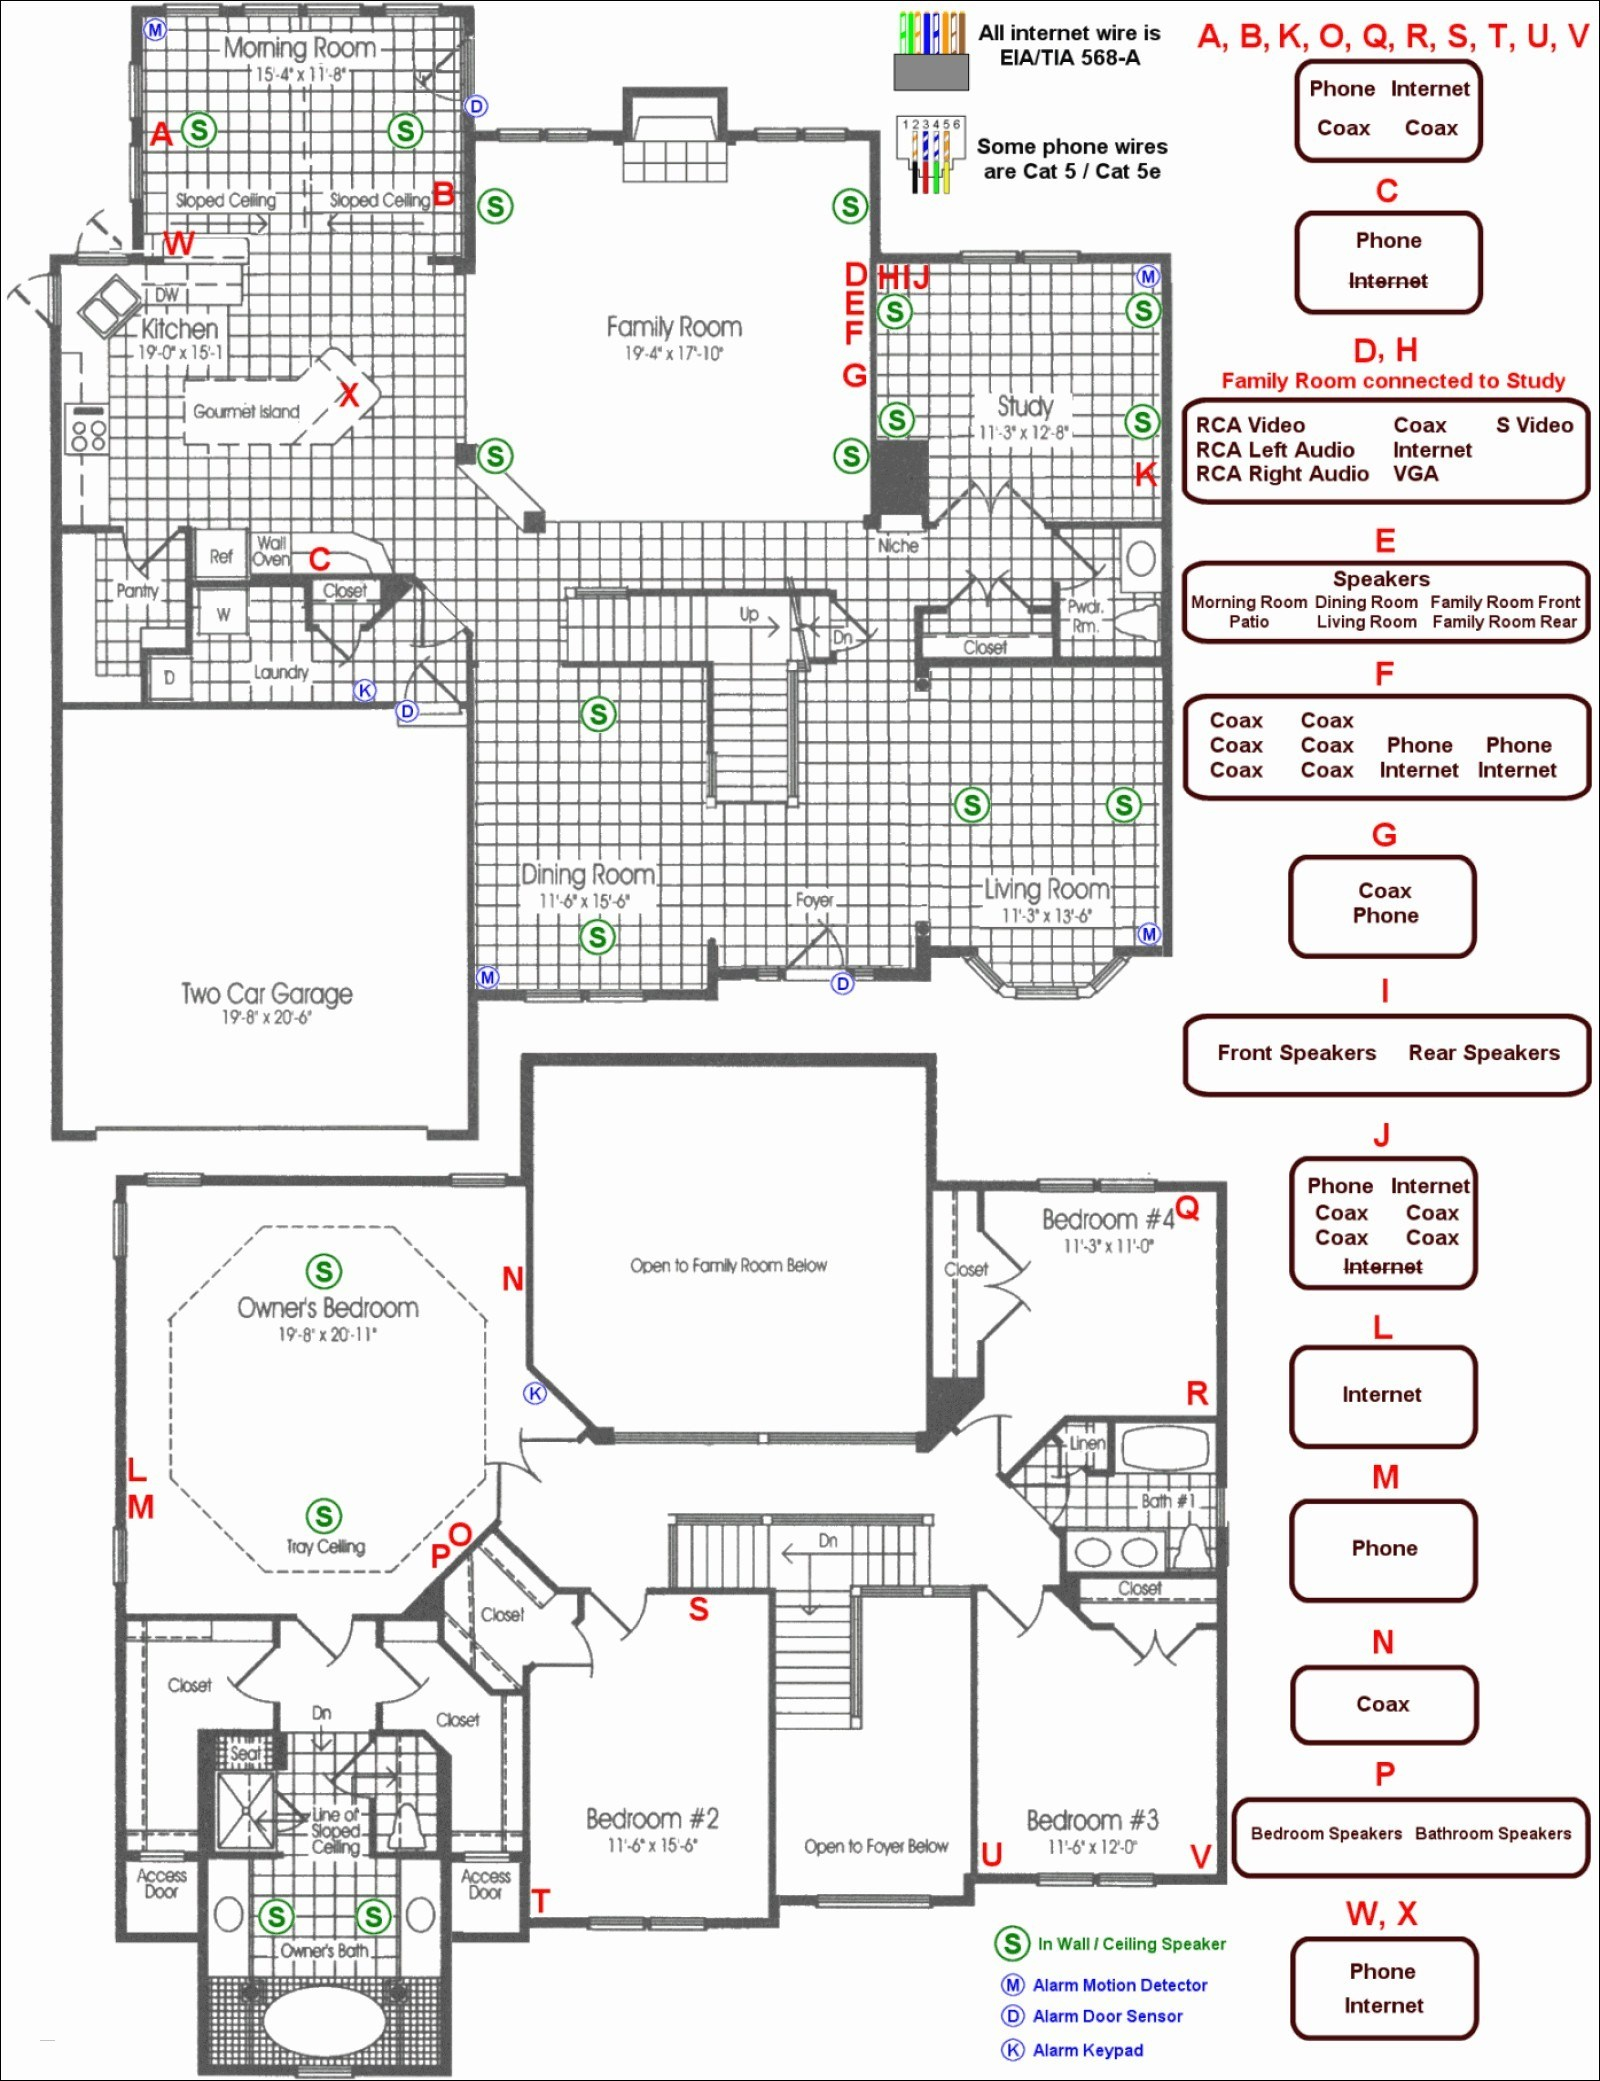 free home wiring diagram software Collection-wire diagram new home wiring diagram gallery of wire diagram 19-e